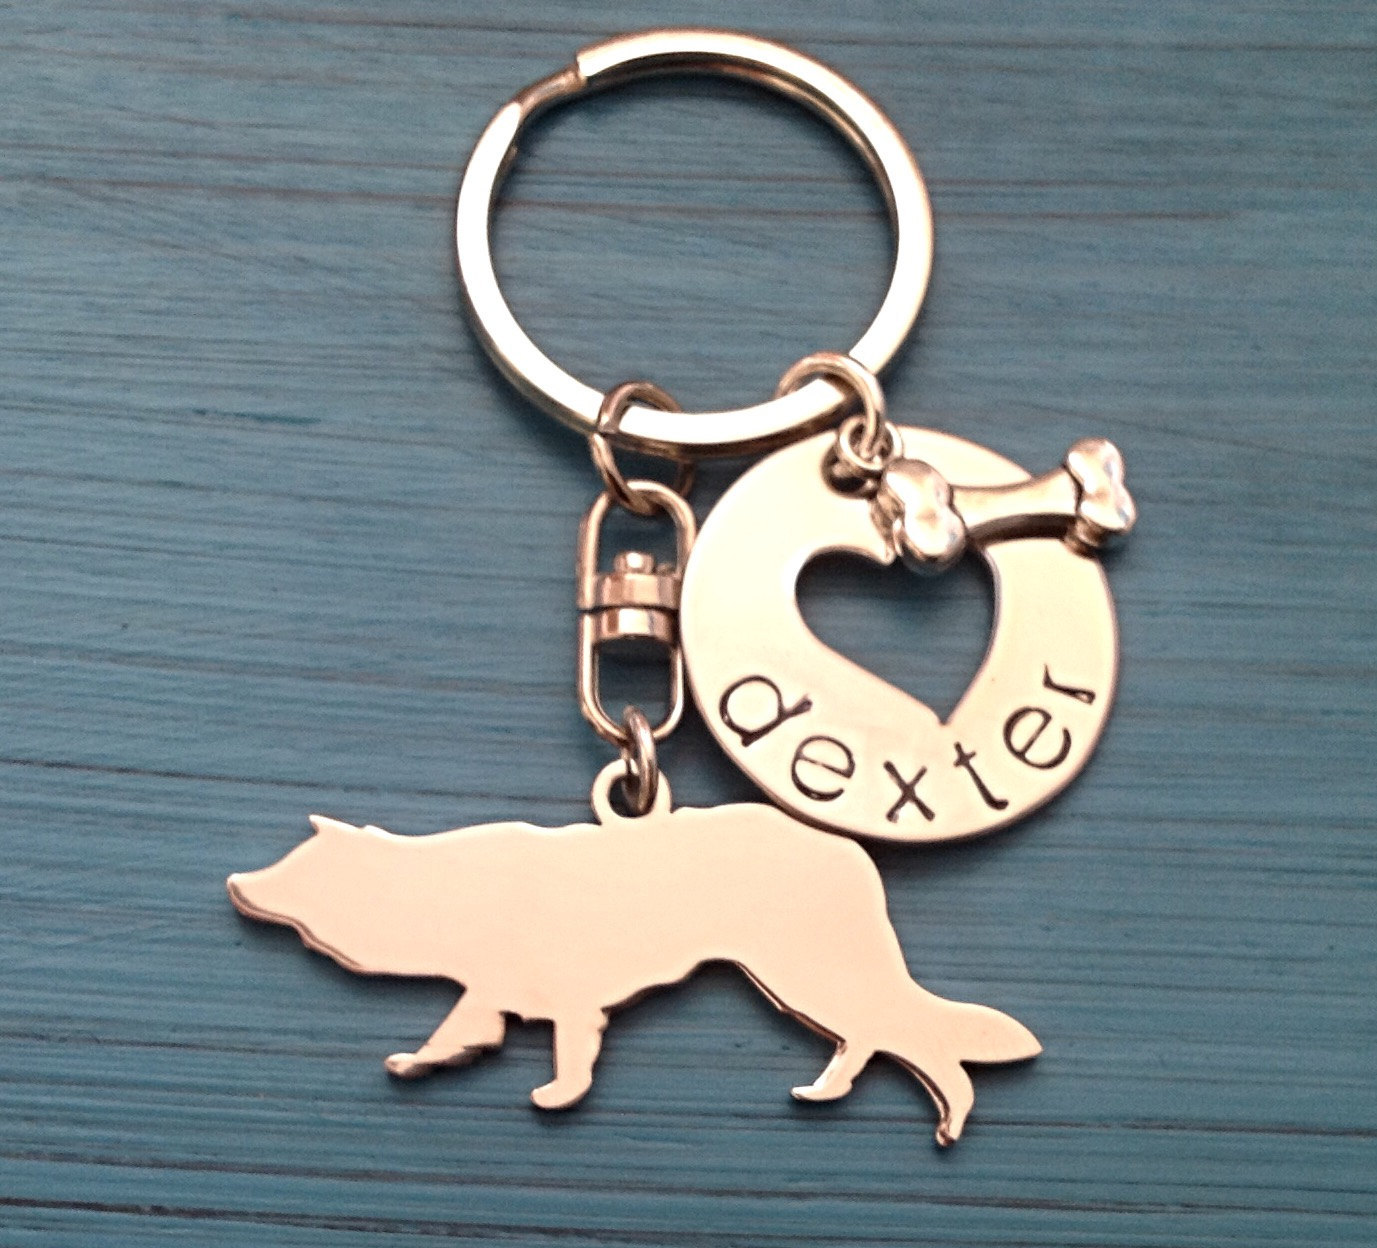 Border Collie Custom Keychain, Herding Dog, Border Collie Jewelry, Personalized  - $18.00